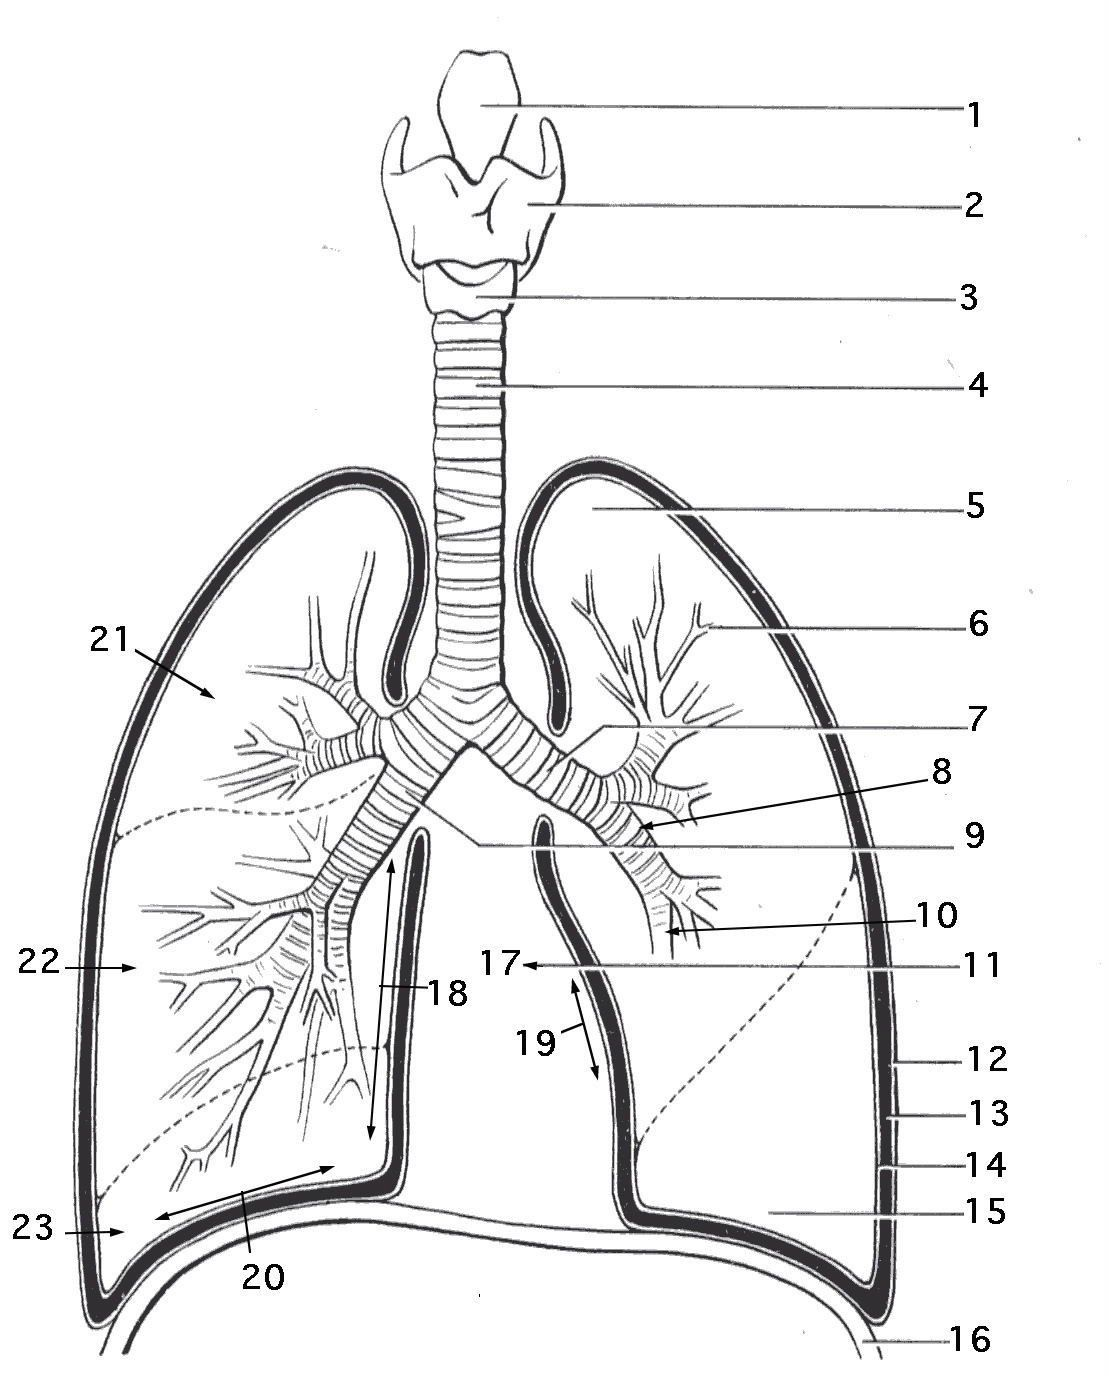 Anatomy Coloring Pages Lung Anatomy Coloring Page